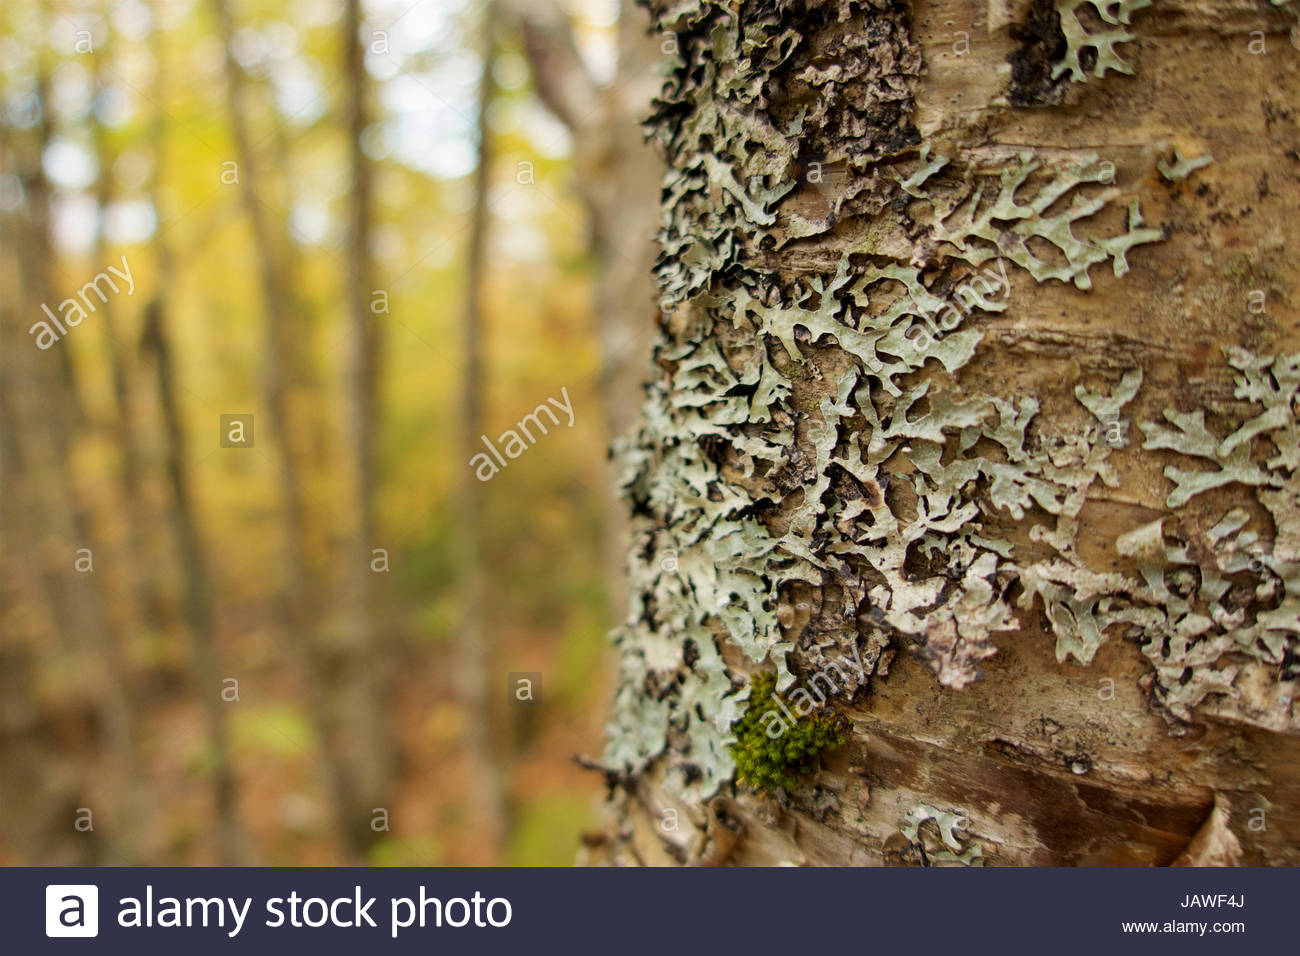 Lichens on tree trunk with fall foliage in the background. - Stock Image